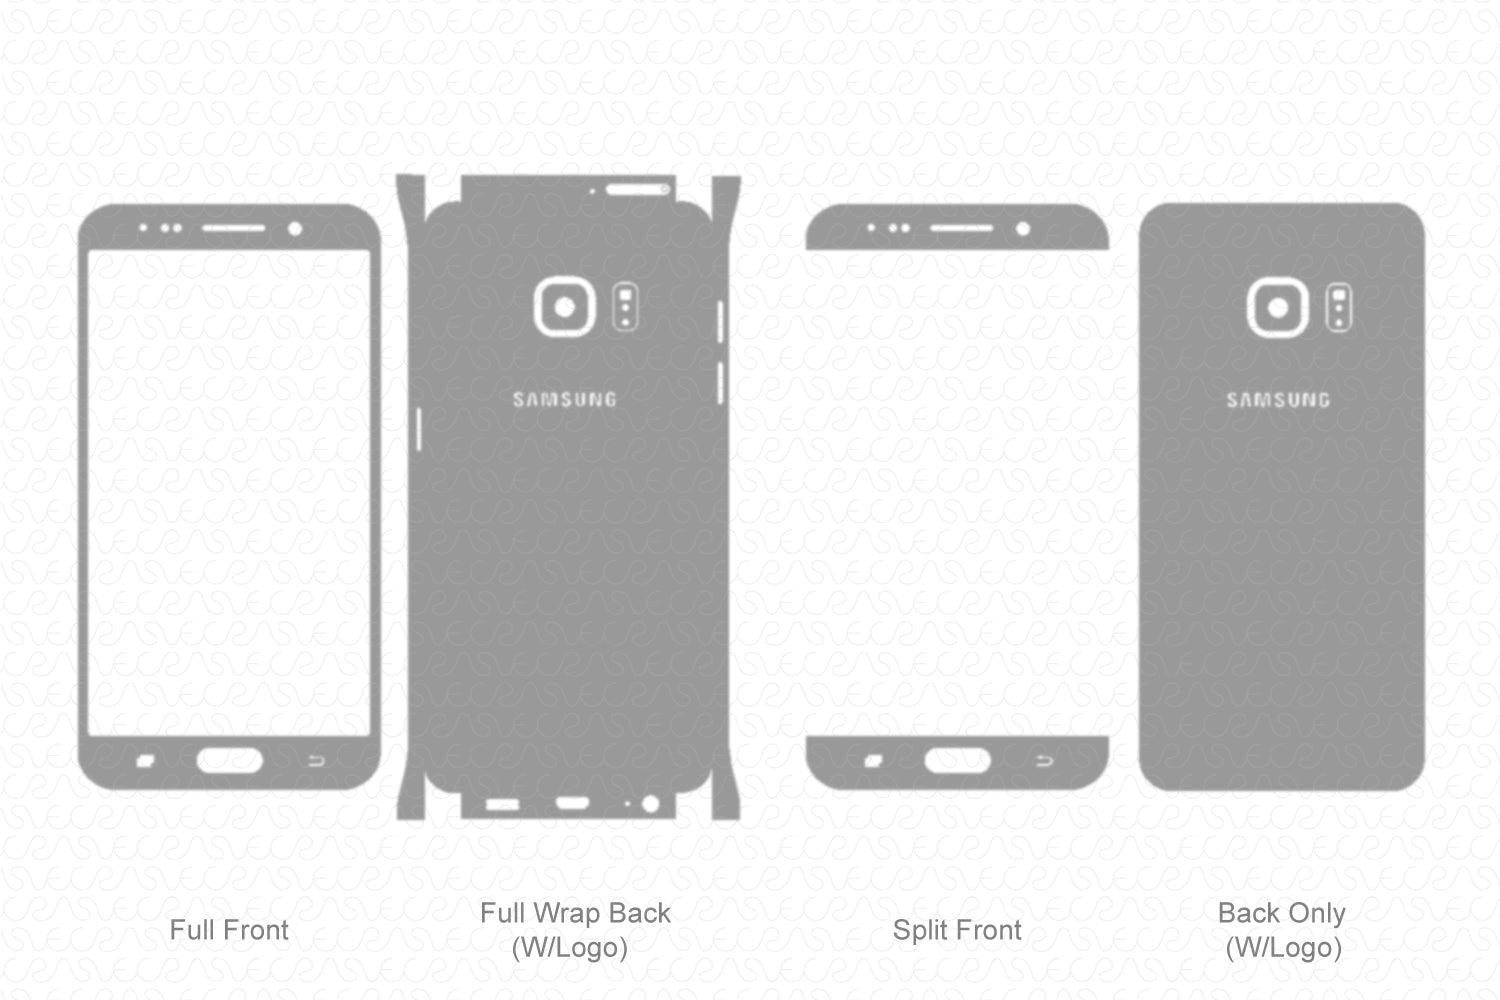 Samsung Galaxy S6 Edge Plus Skin Template Vector 2015